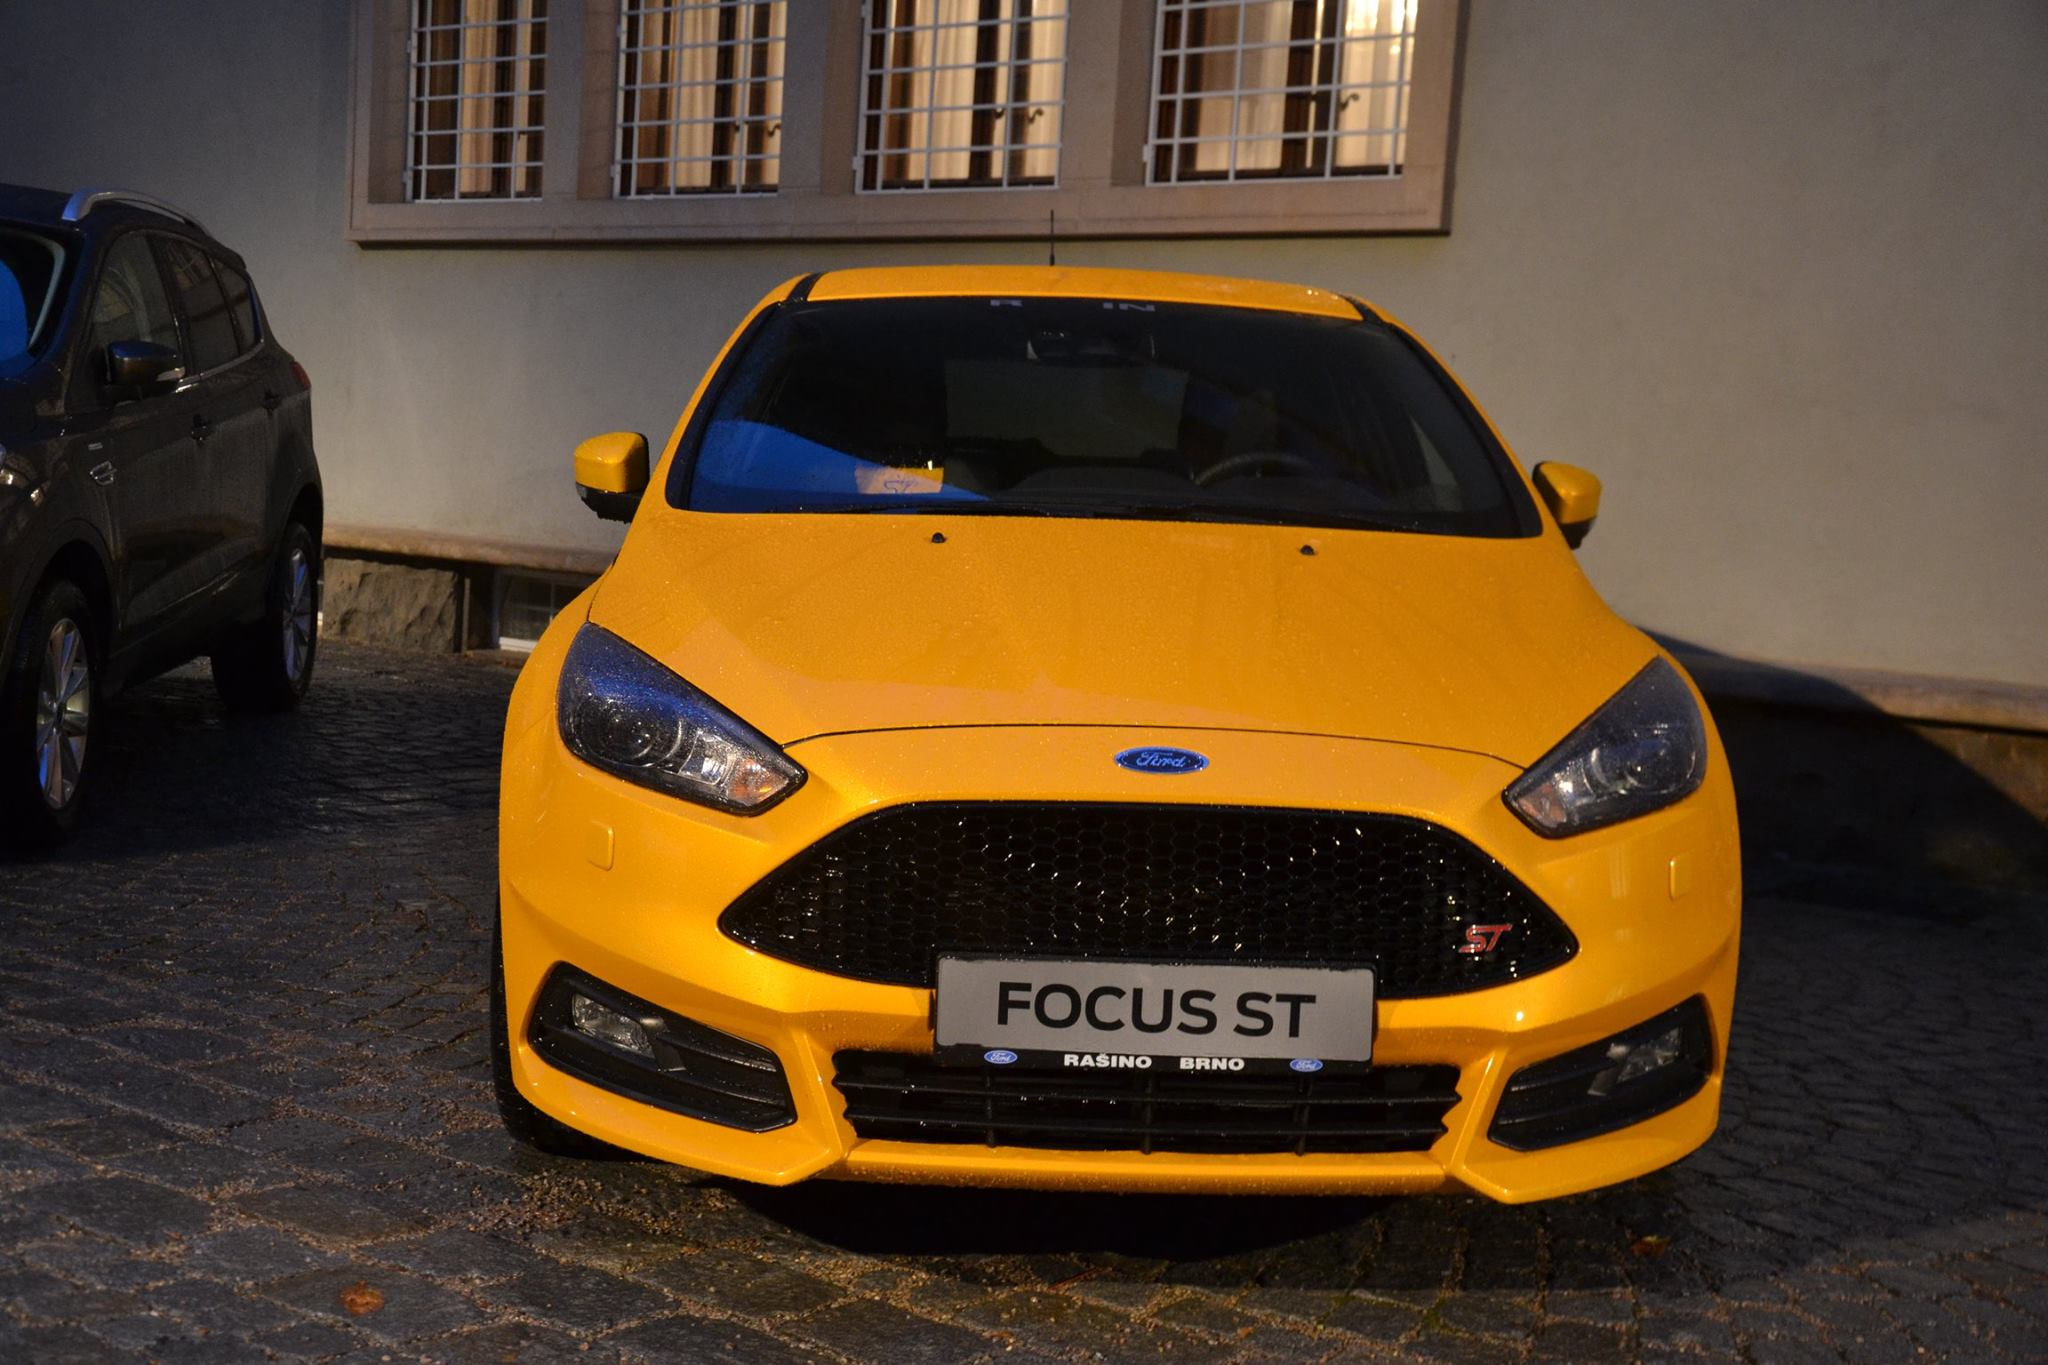 Ford Focus ST - Ford Rašino Brno